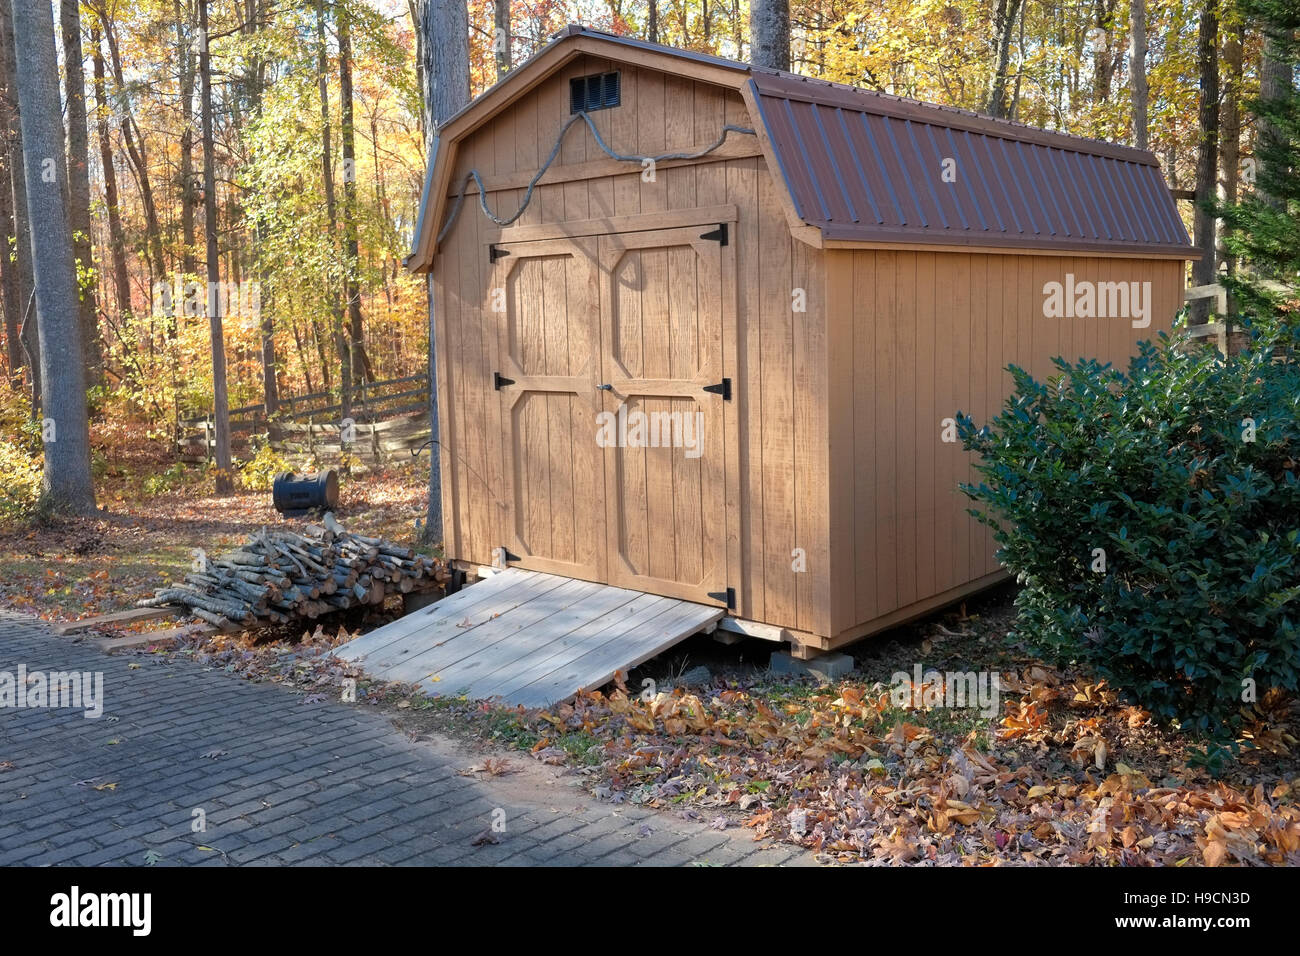 Storage shed and fall foliage - Stock Image